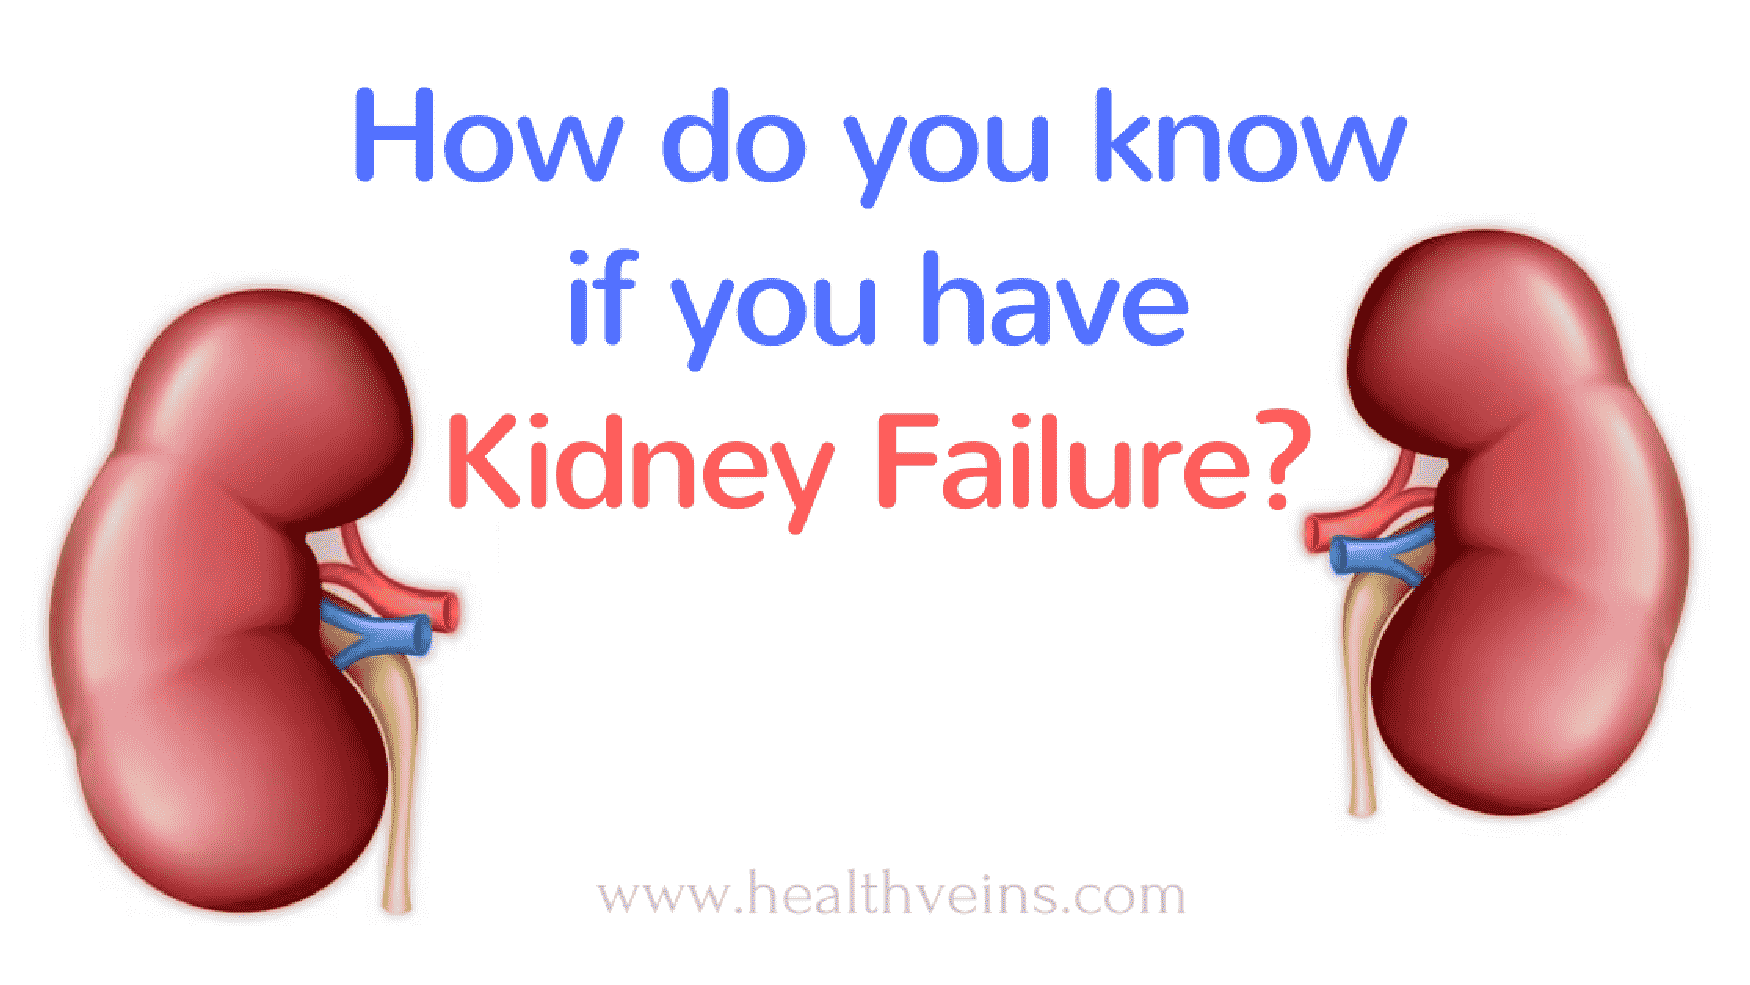 How do you know if you have kidney failure? - Healthveins - photo#12